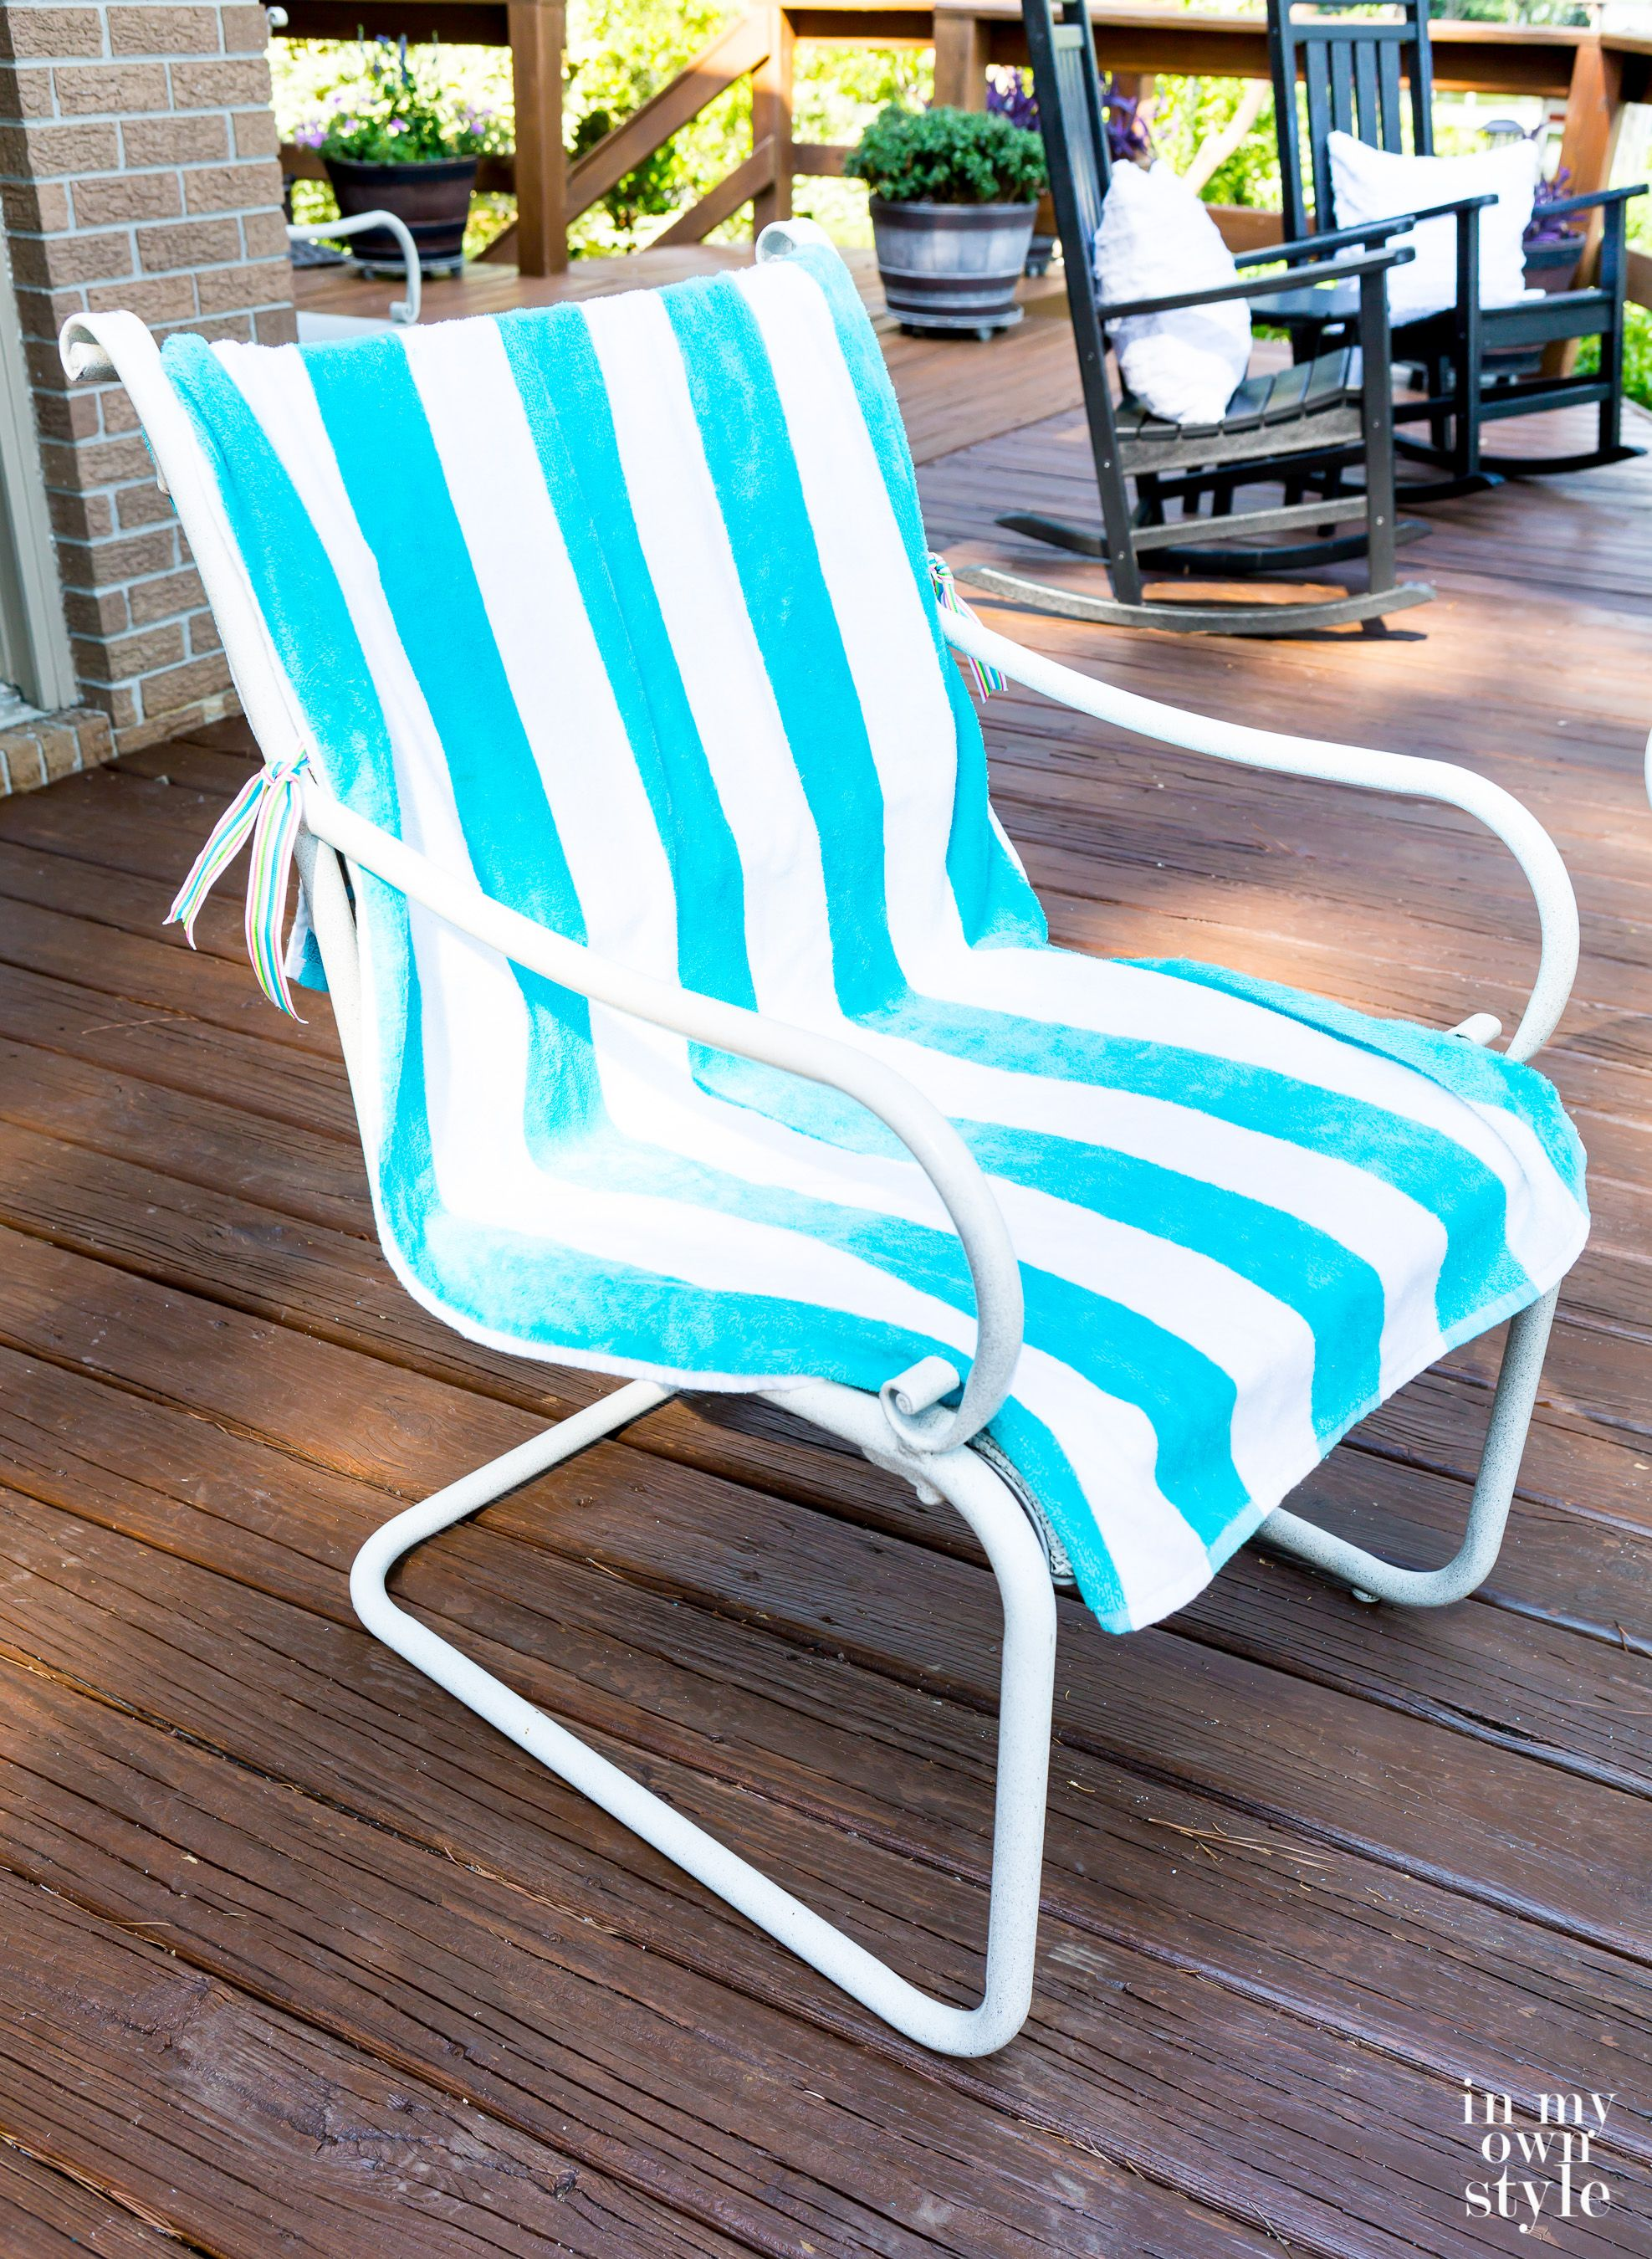 How to make tie on washable outdoor chair cushions without